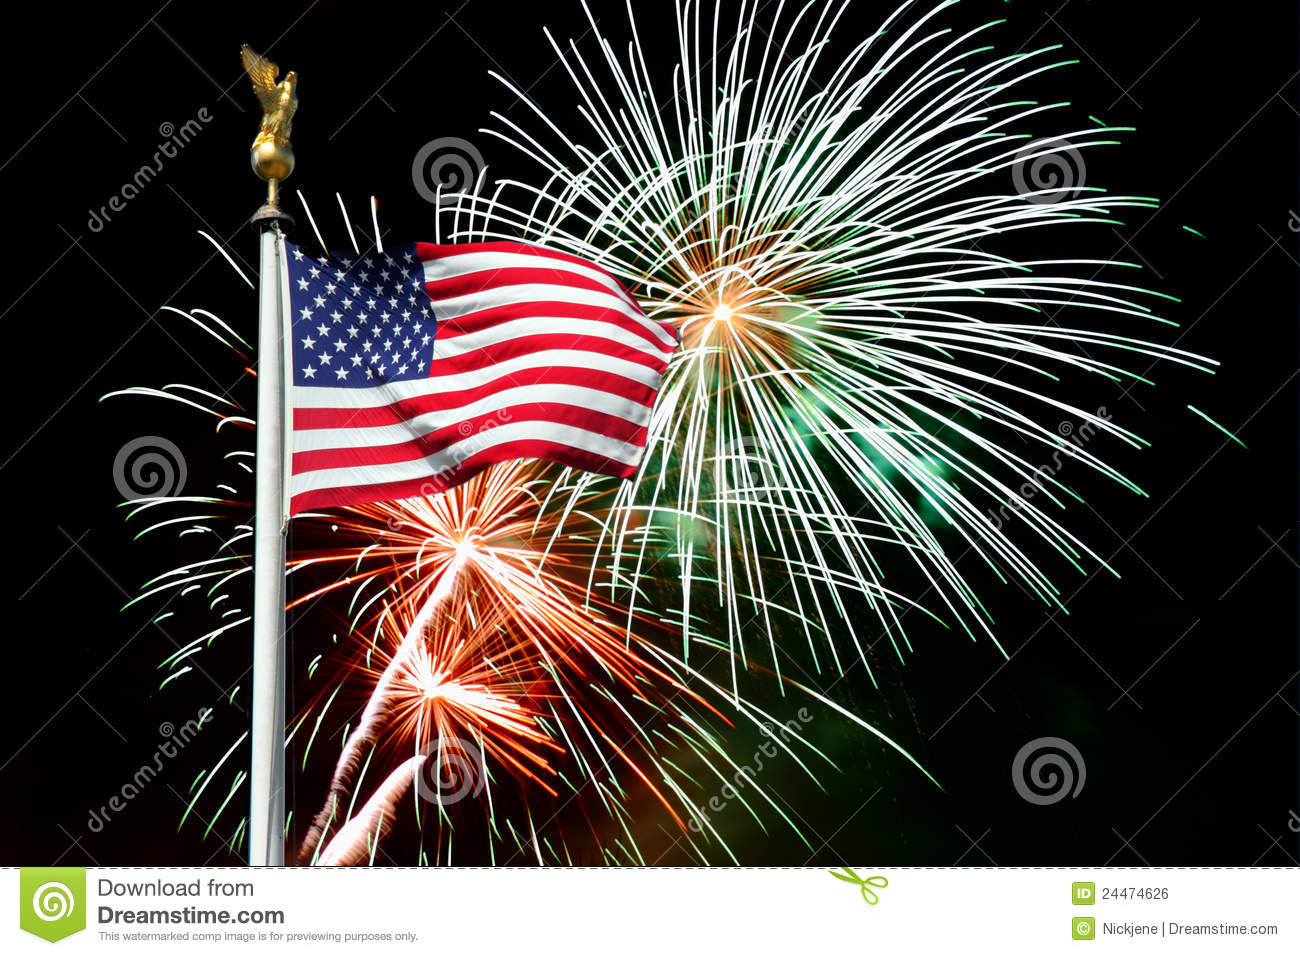 Fireworks clipart flag In flag with American collection